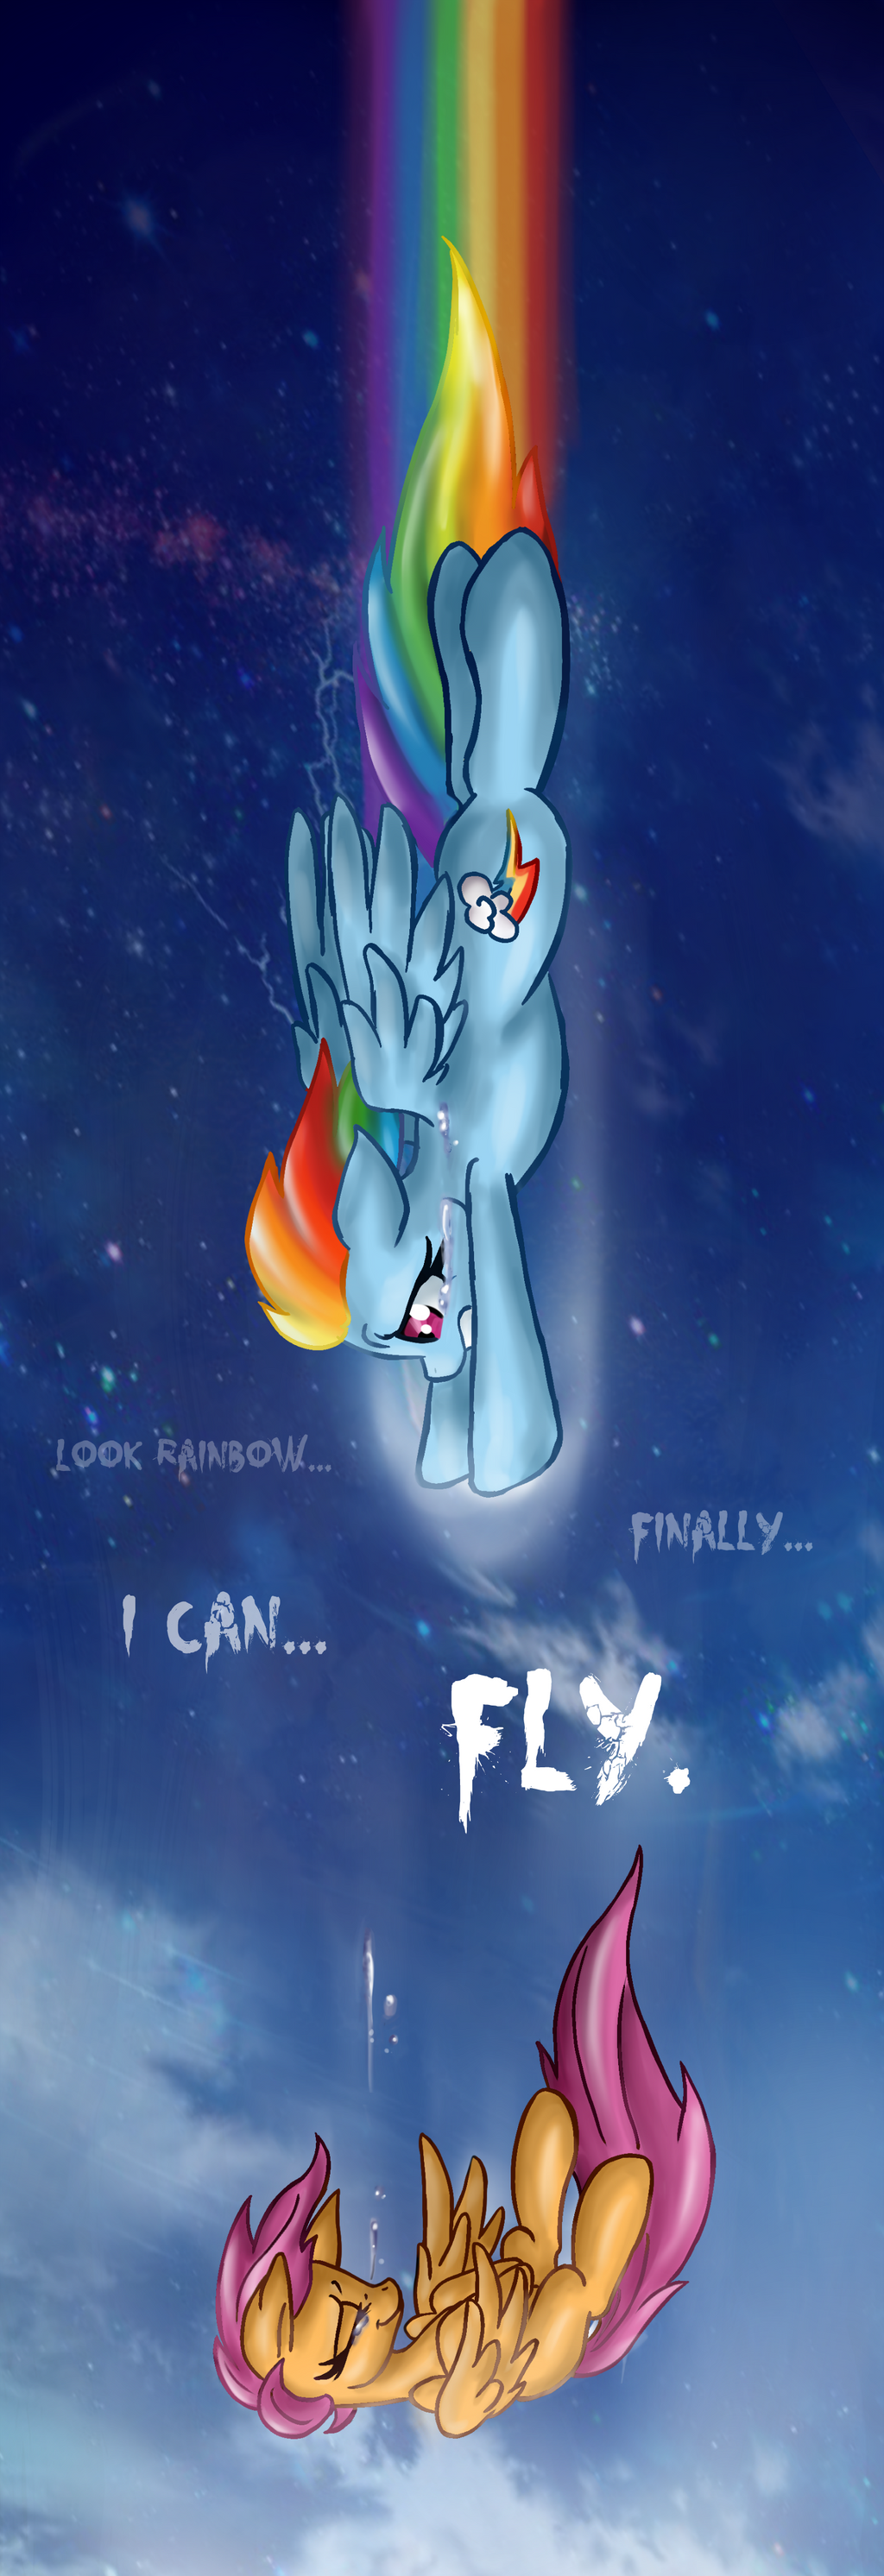 Look... Finally I can FLY... by RainbowSpine